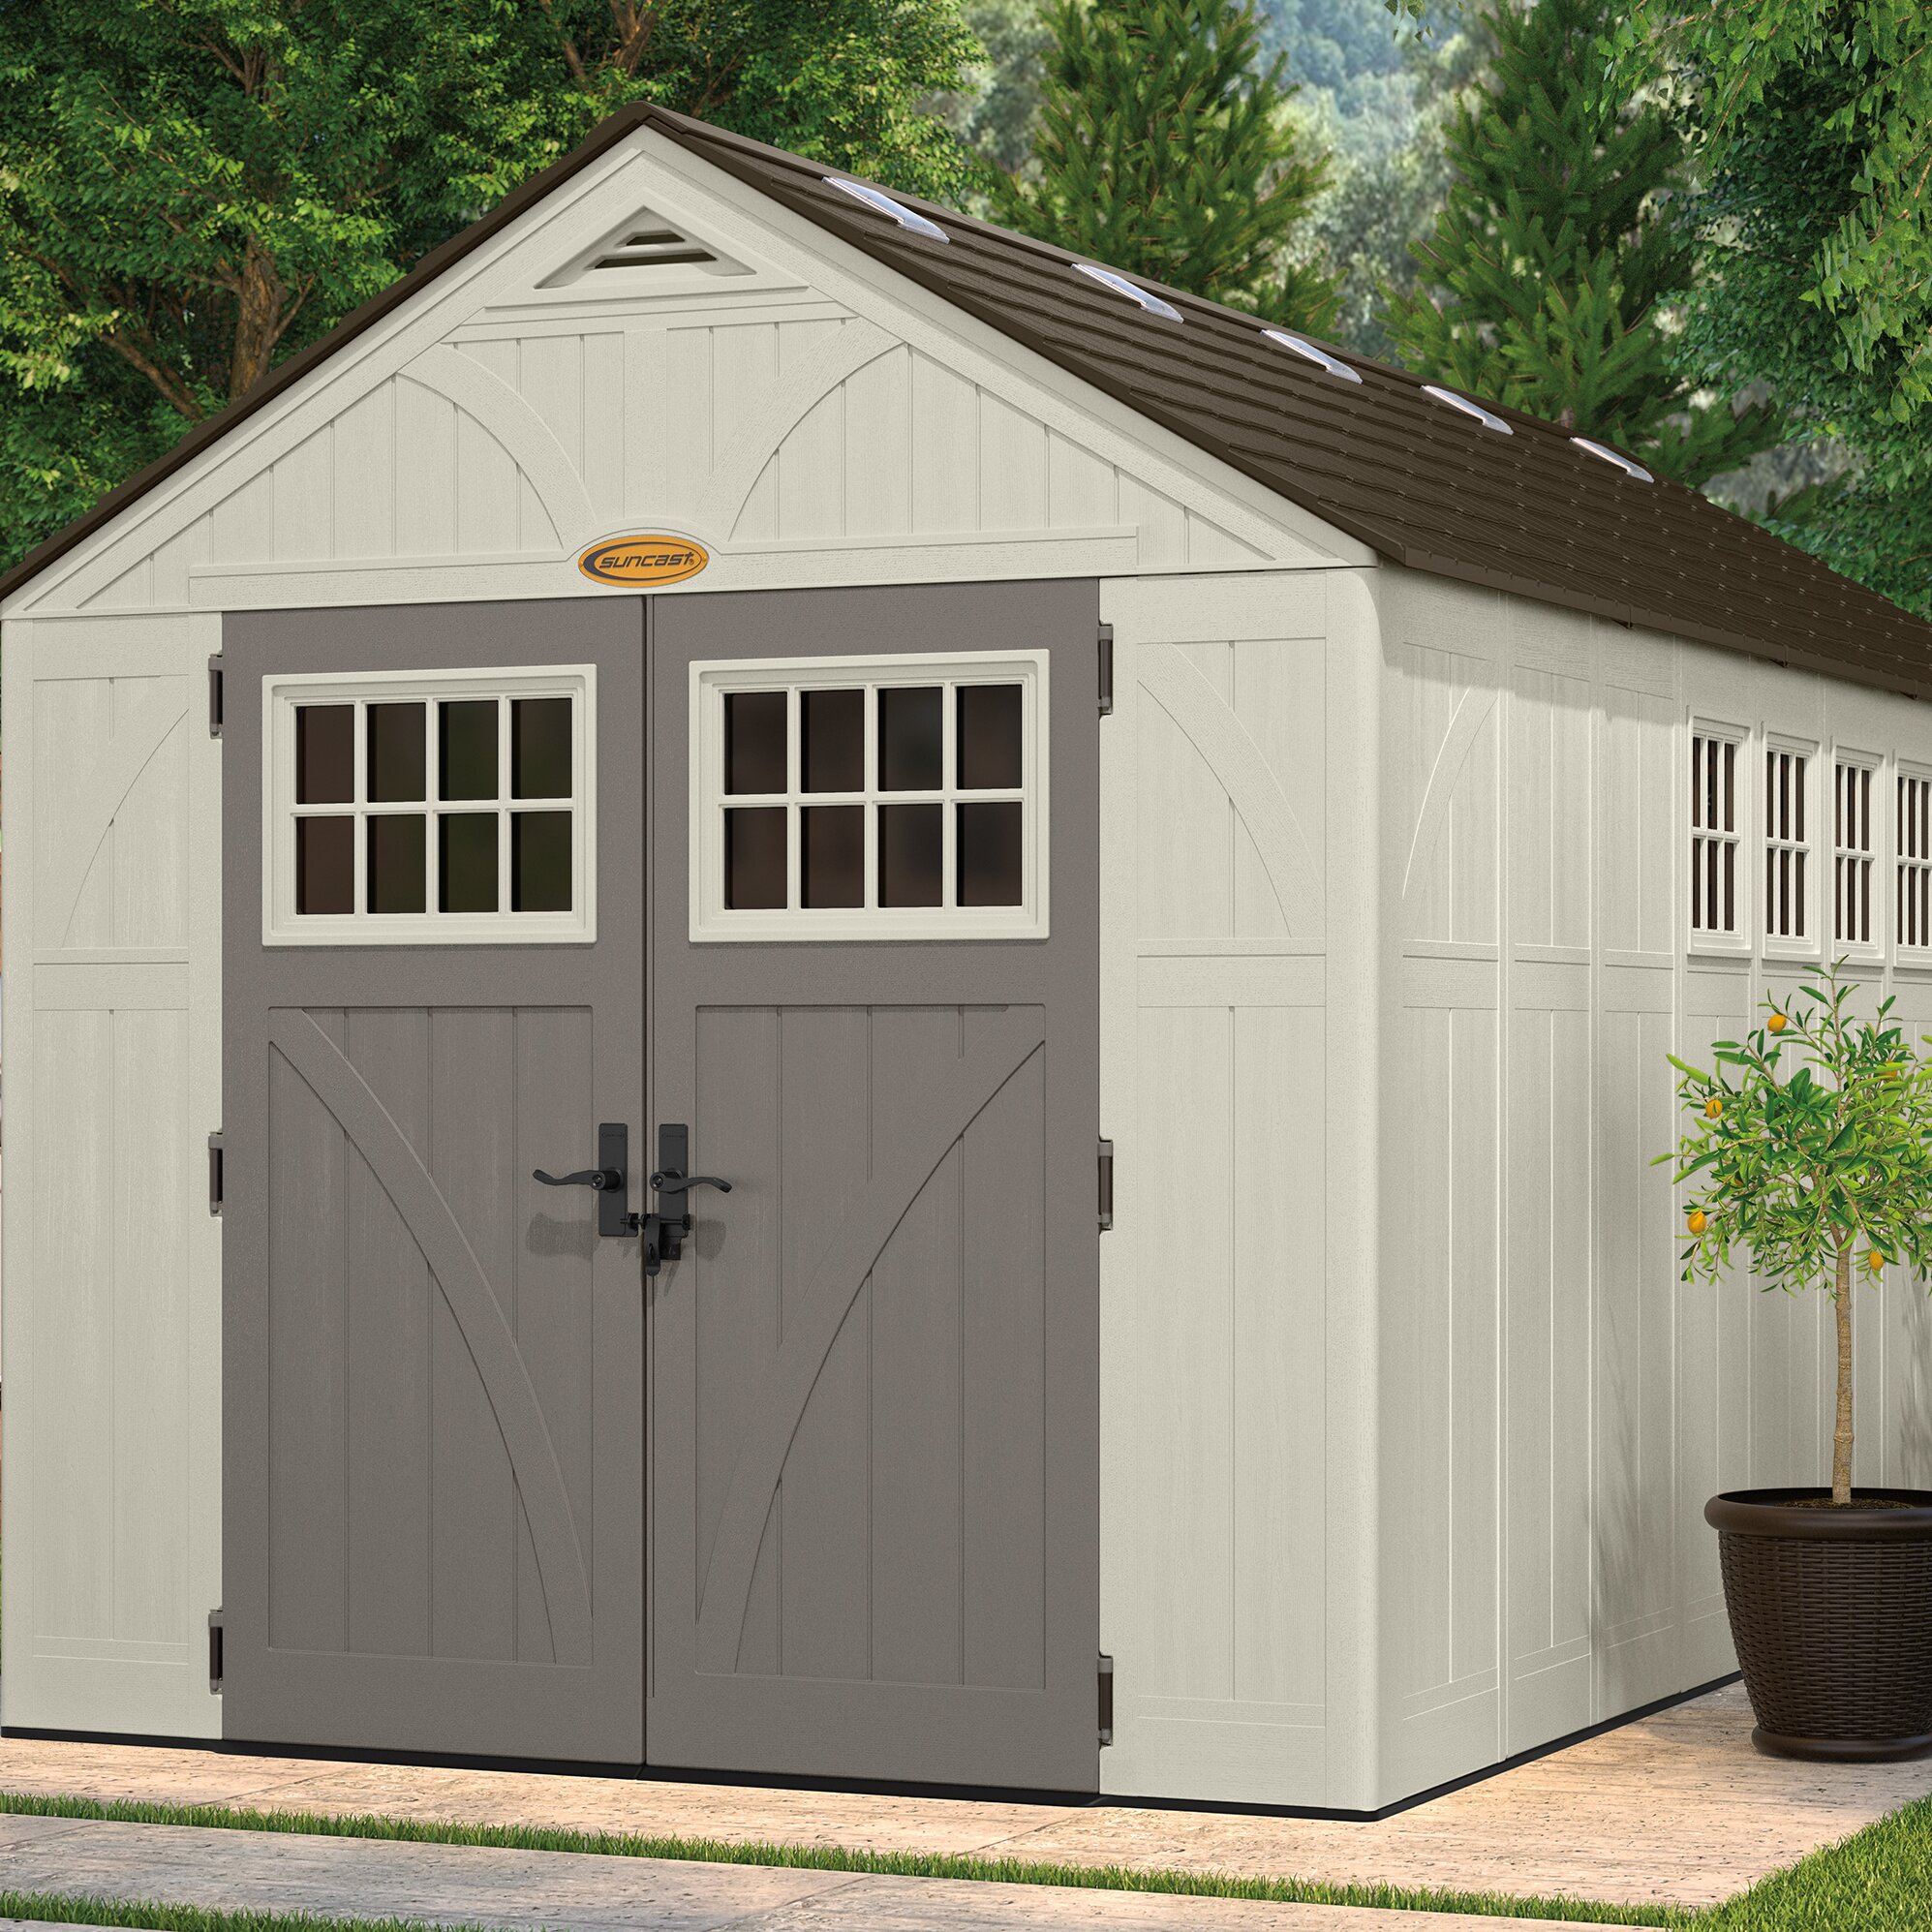 Suncast tremont 8 ft w x 16 ft d resin storage shed for Resin storage sheds